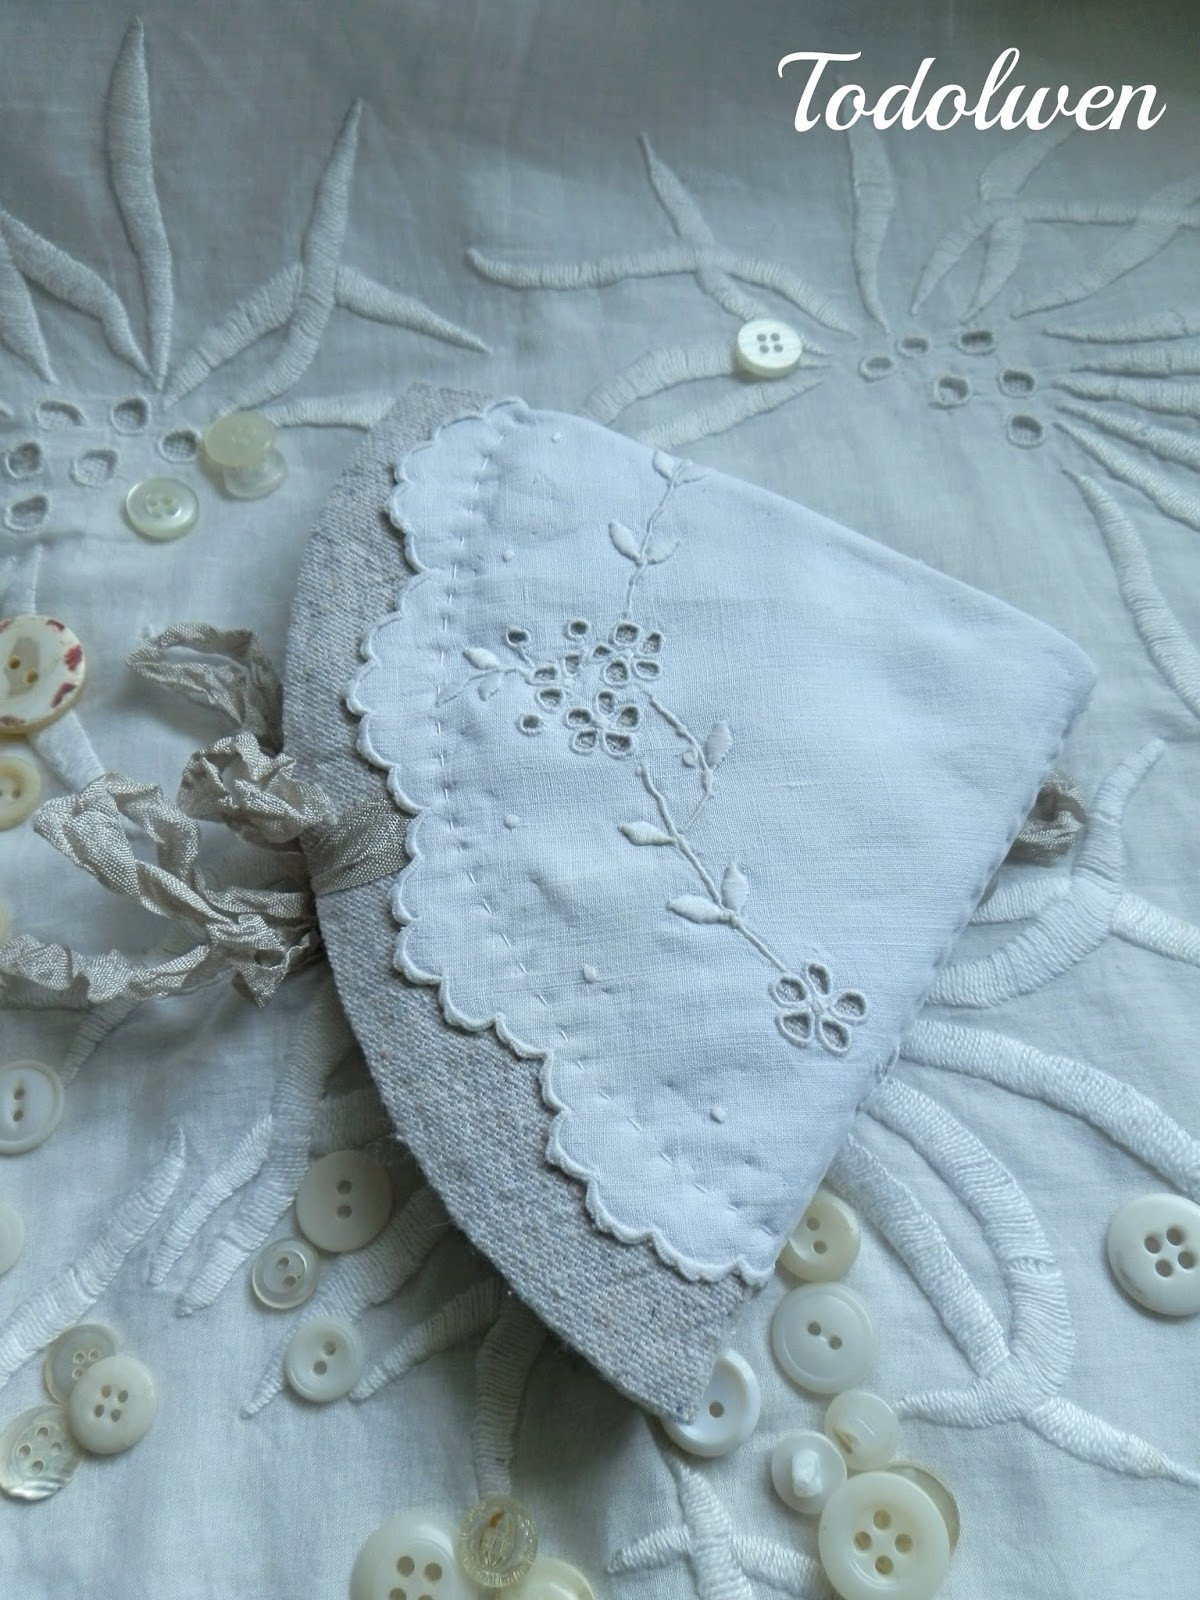 Fabric Doilies Awesome todolwen Two Small Fabric Doilies Of Attractive 41 Pics Fabric Doilies